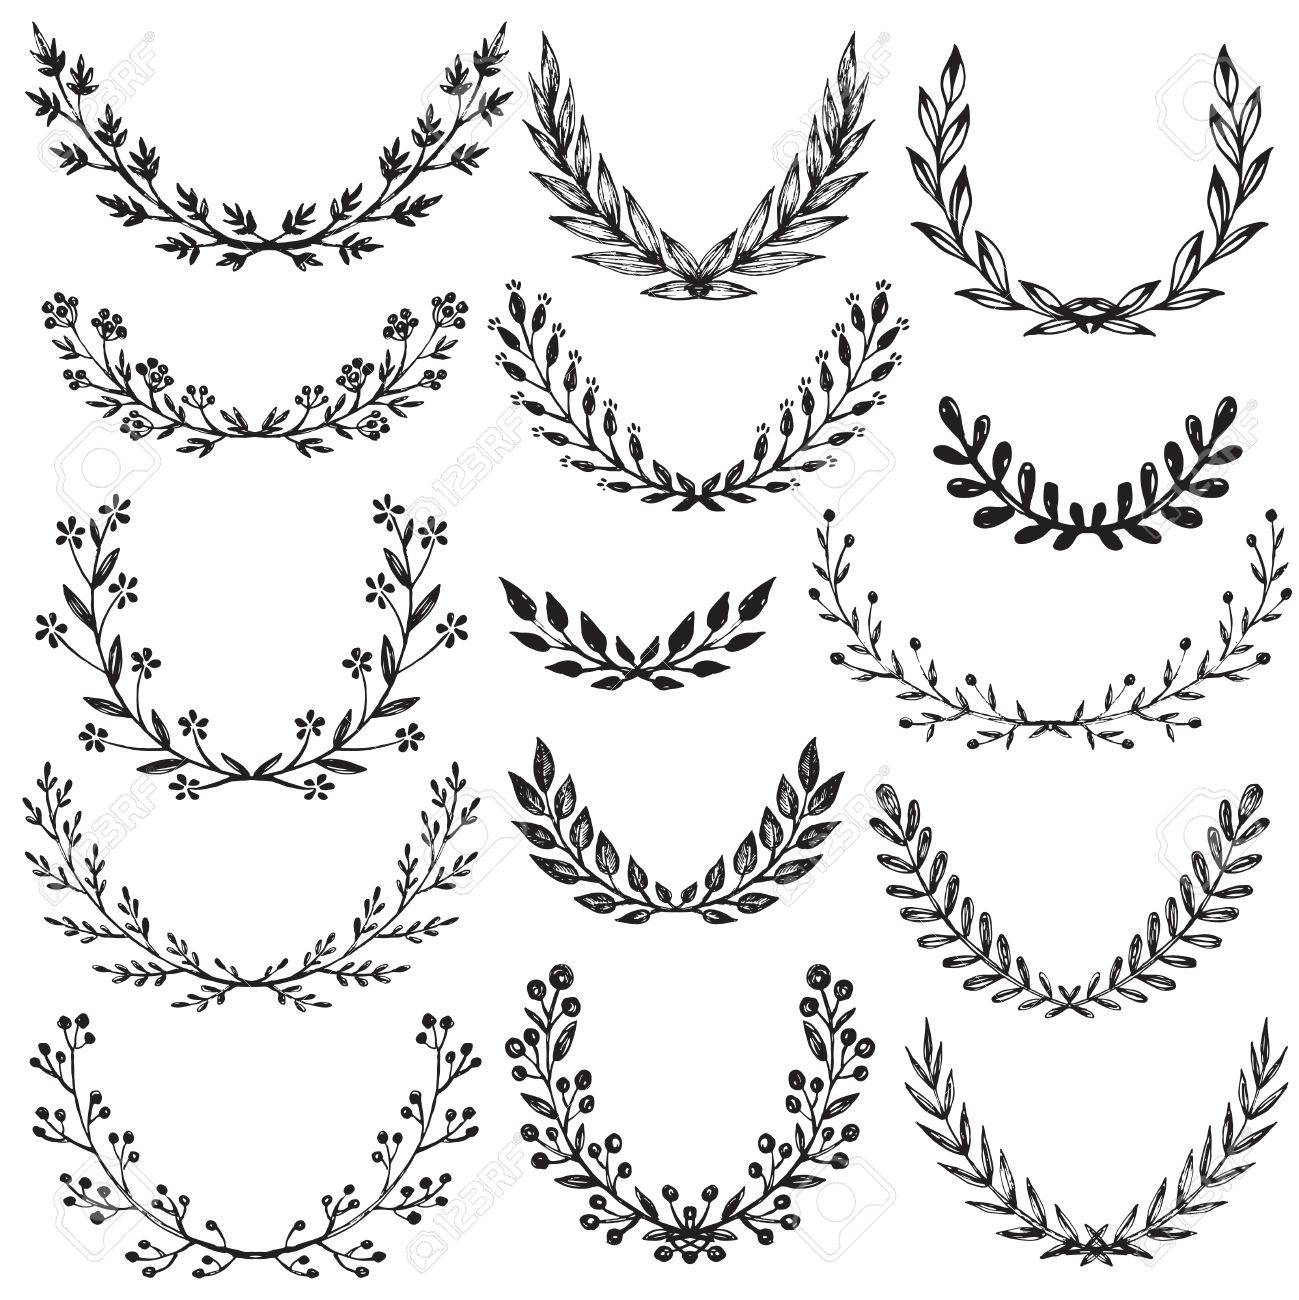 1299x1300 Set Of Hand Drawn Floral Wreaths With Branches, Leaves, Flowers